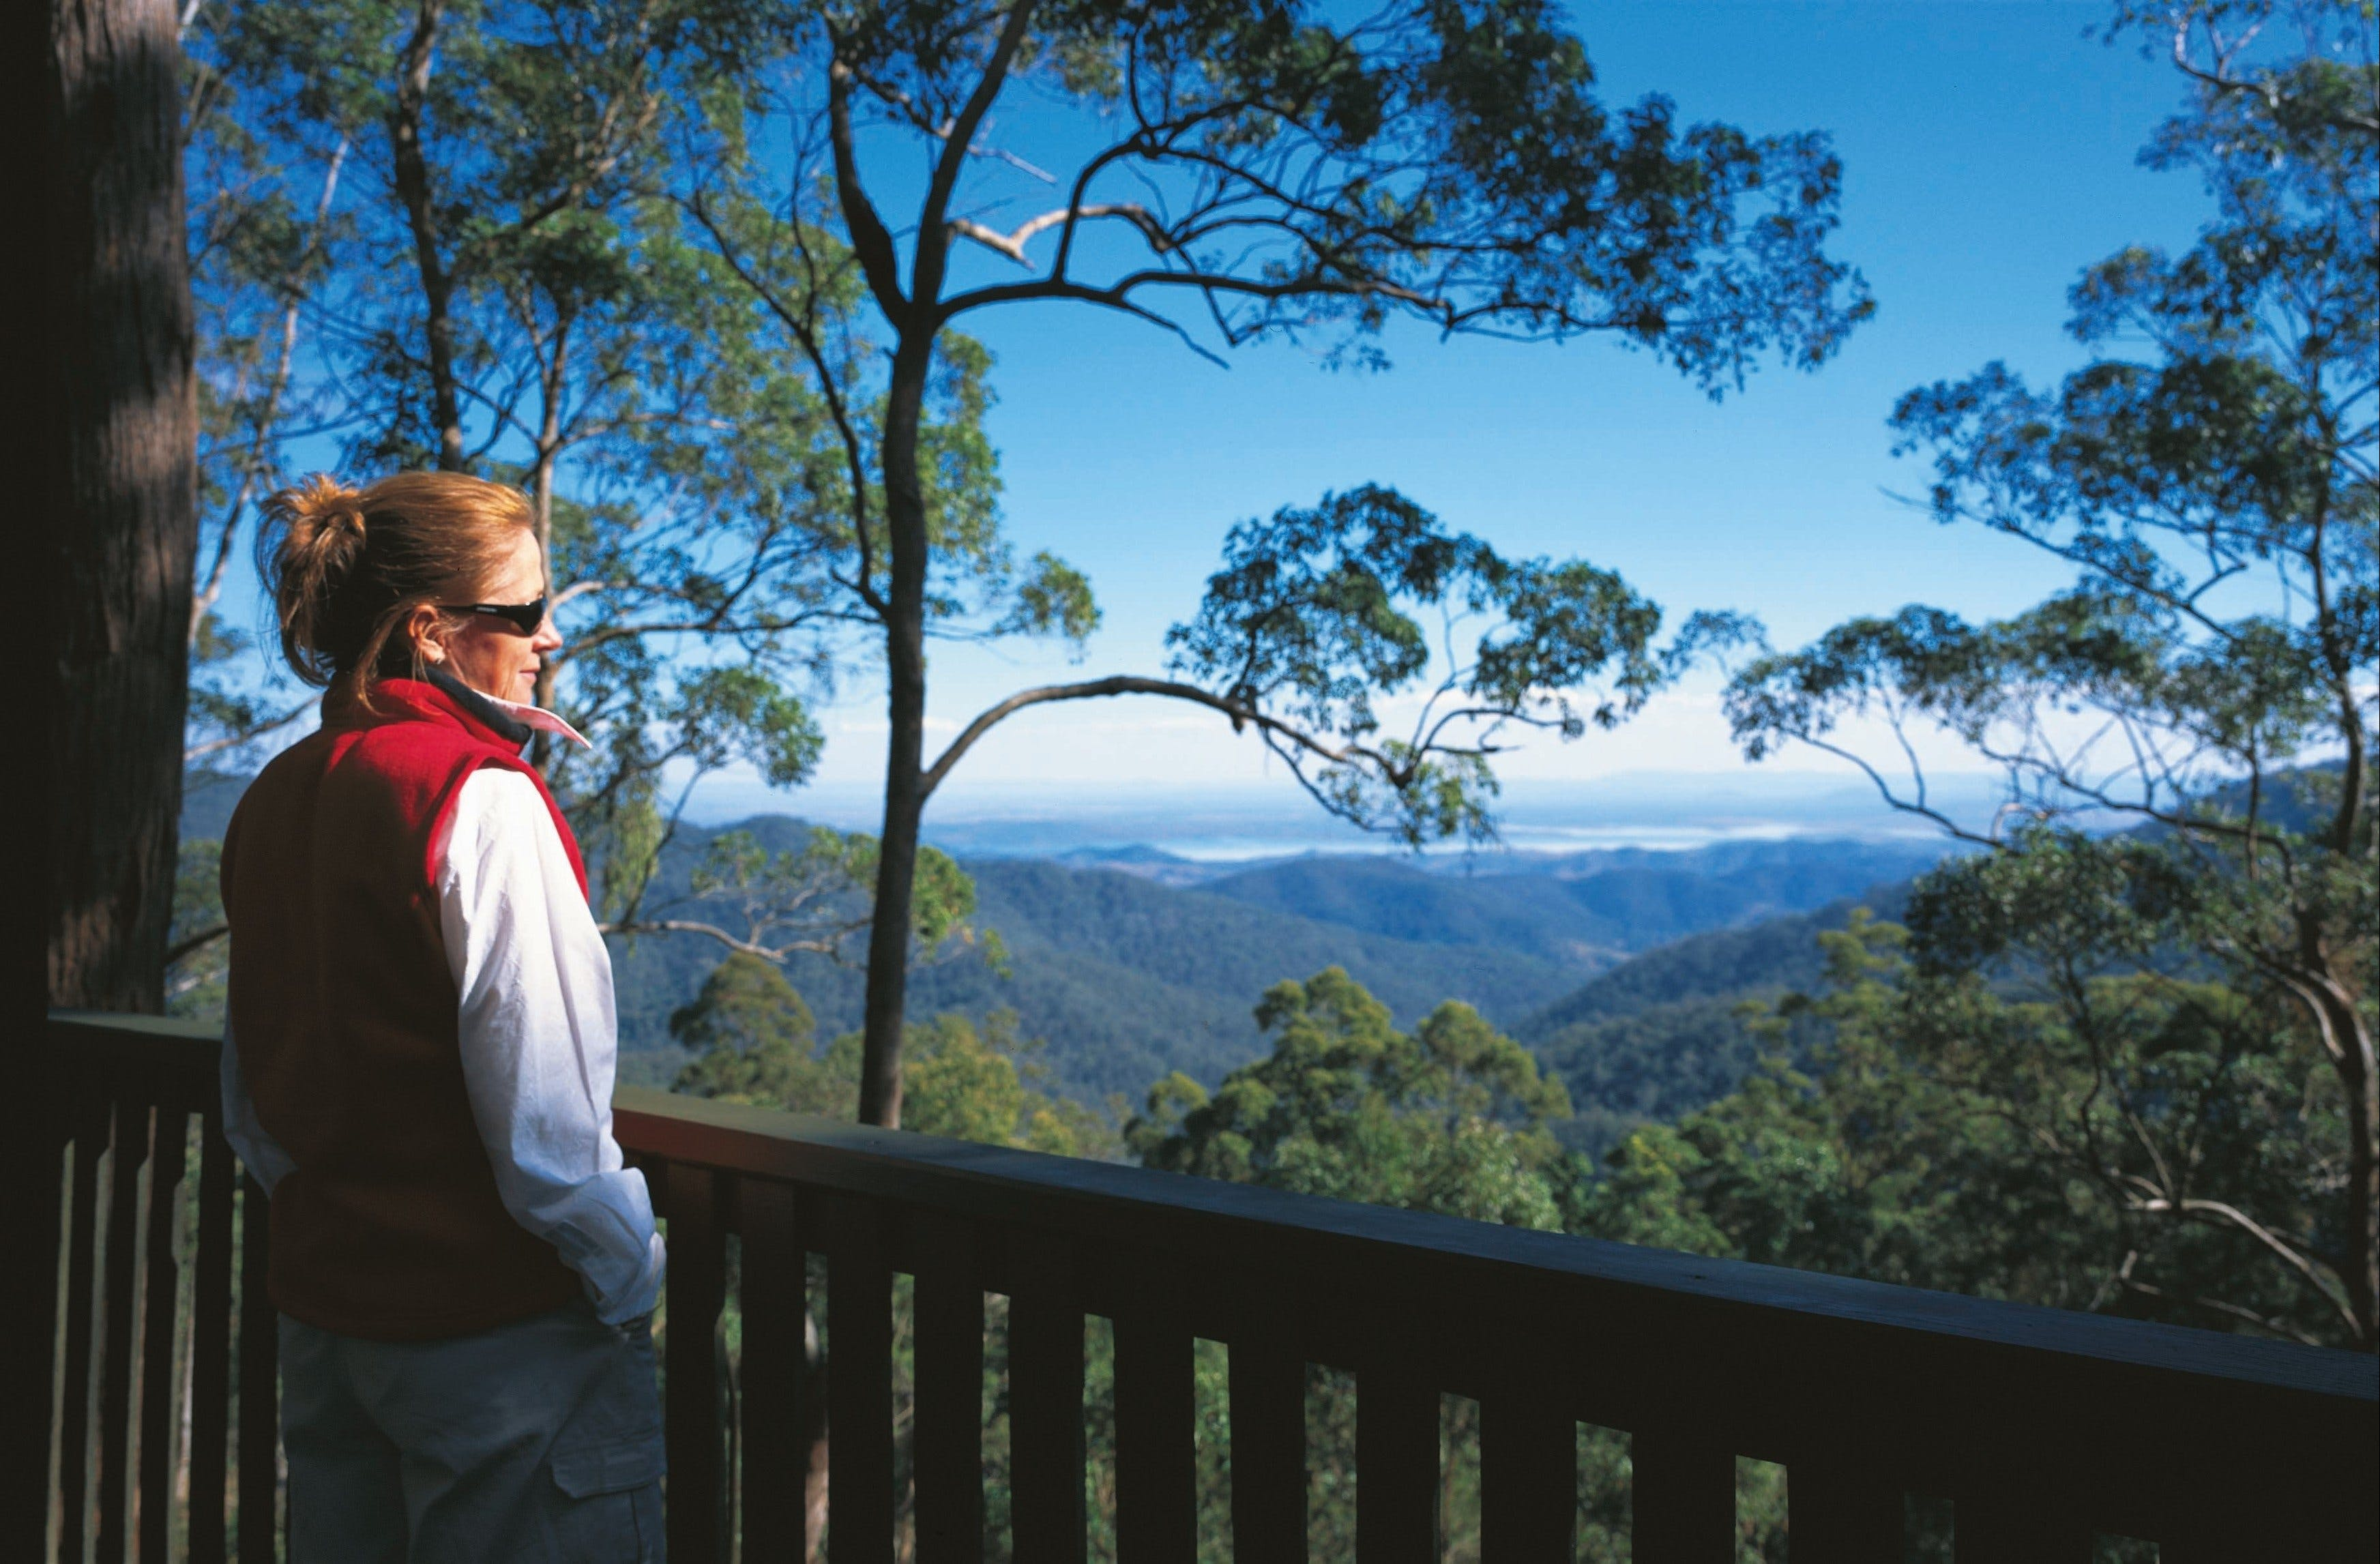 D'Aguilar National Park - Accommodation Adelaide